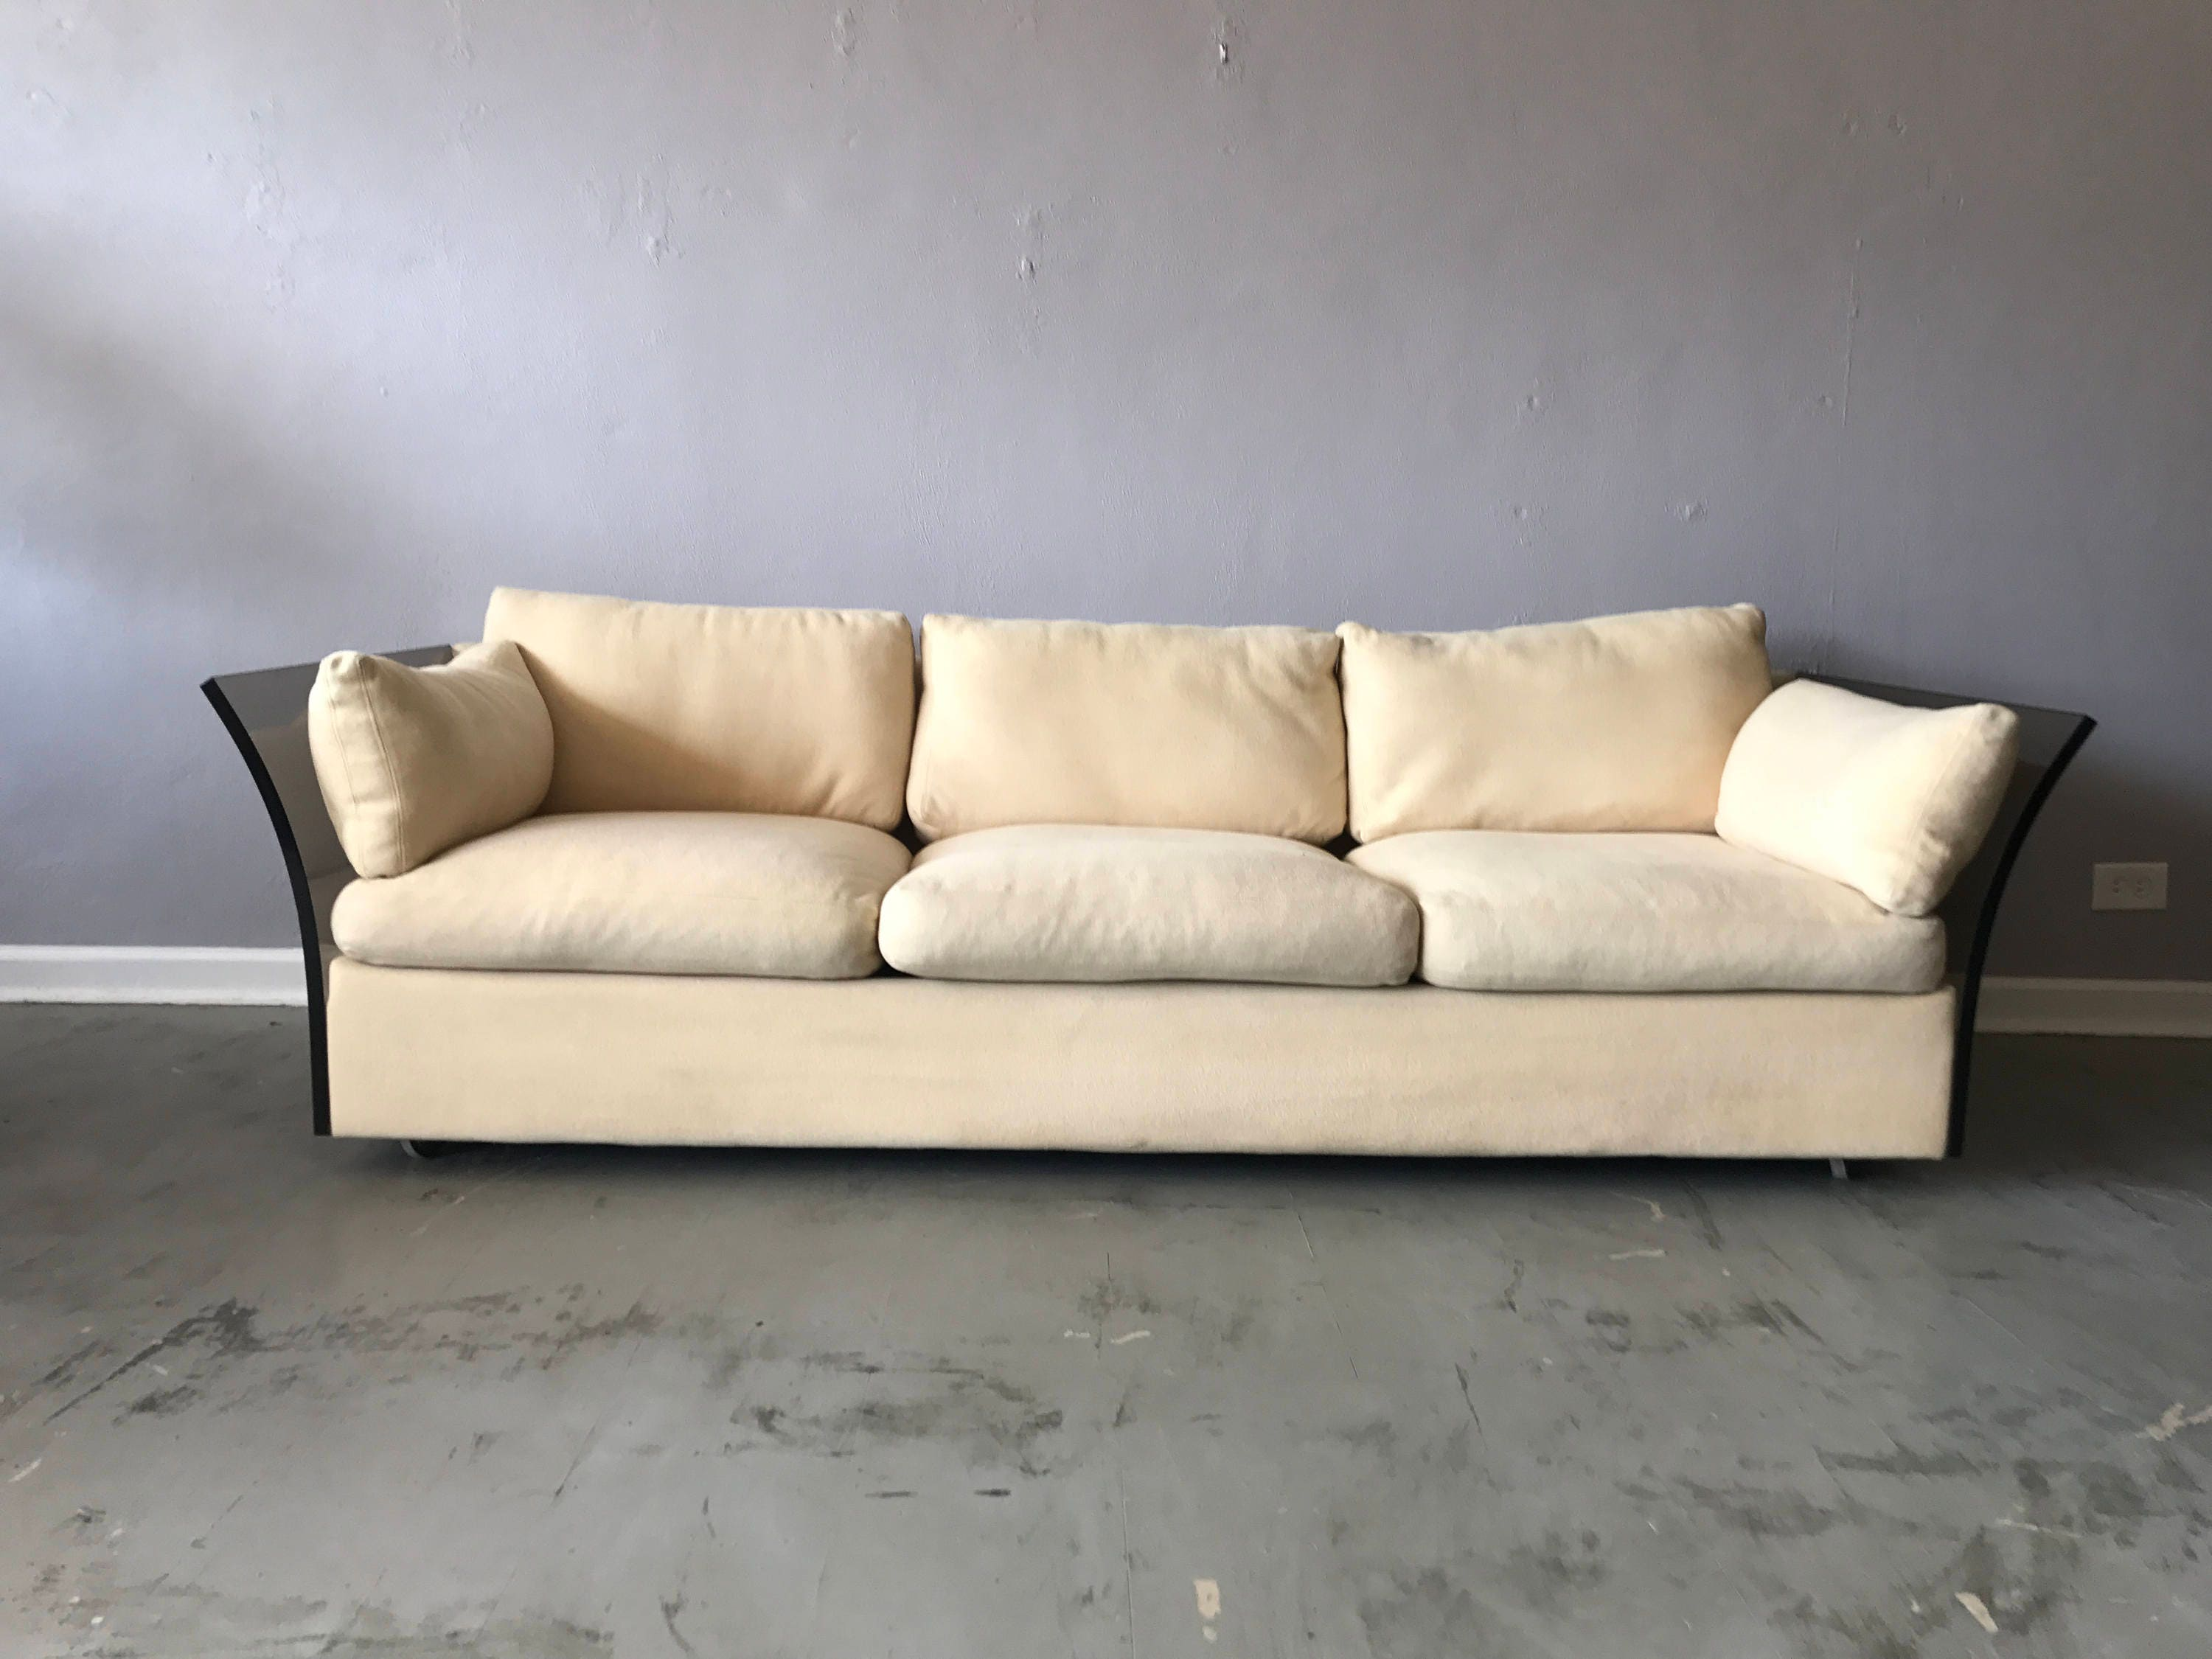 Milo Baughman for Thayer Coggin Sofa with Lucite Arms